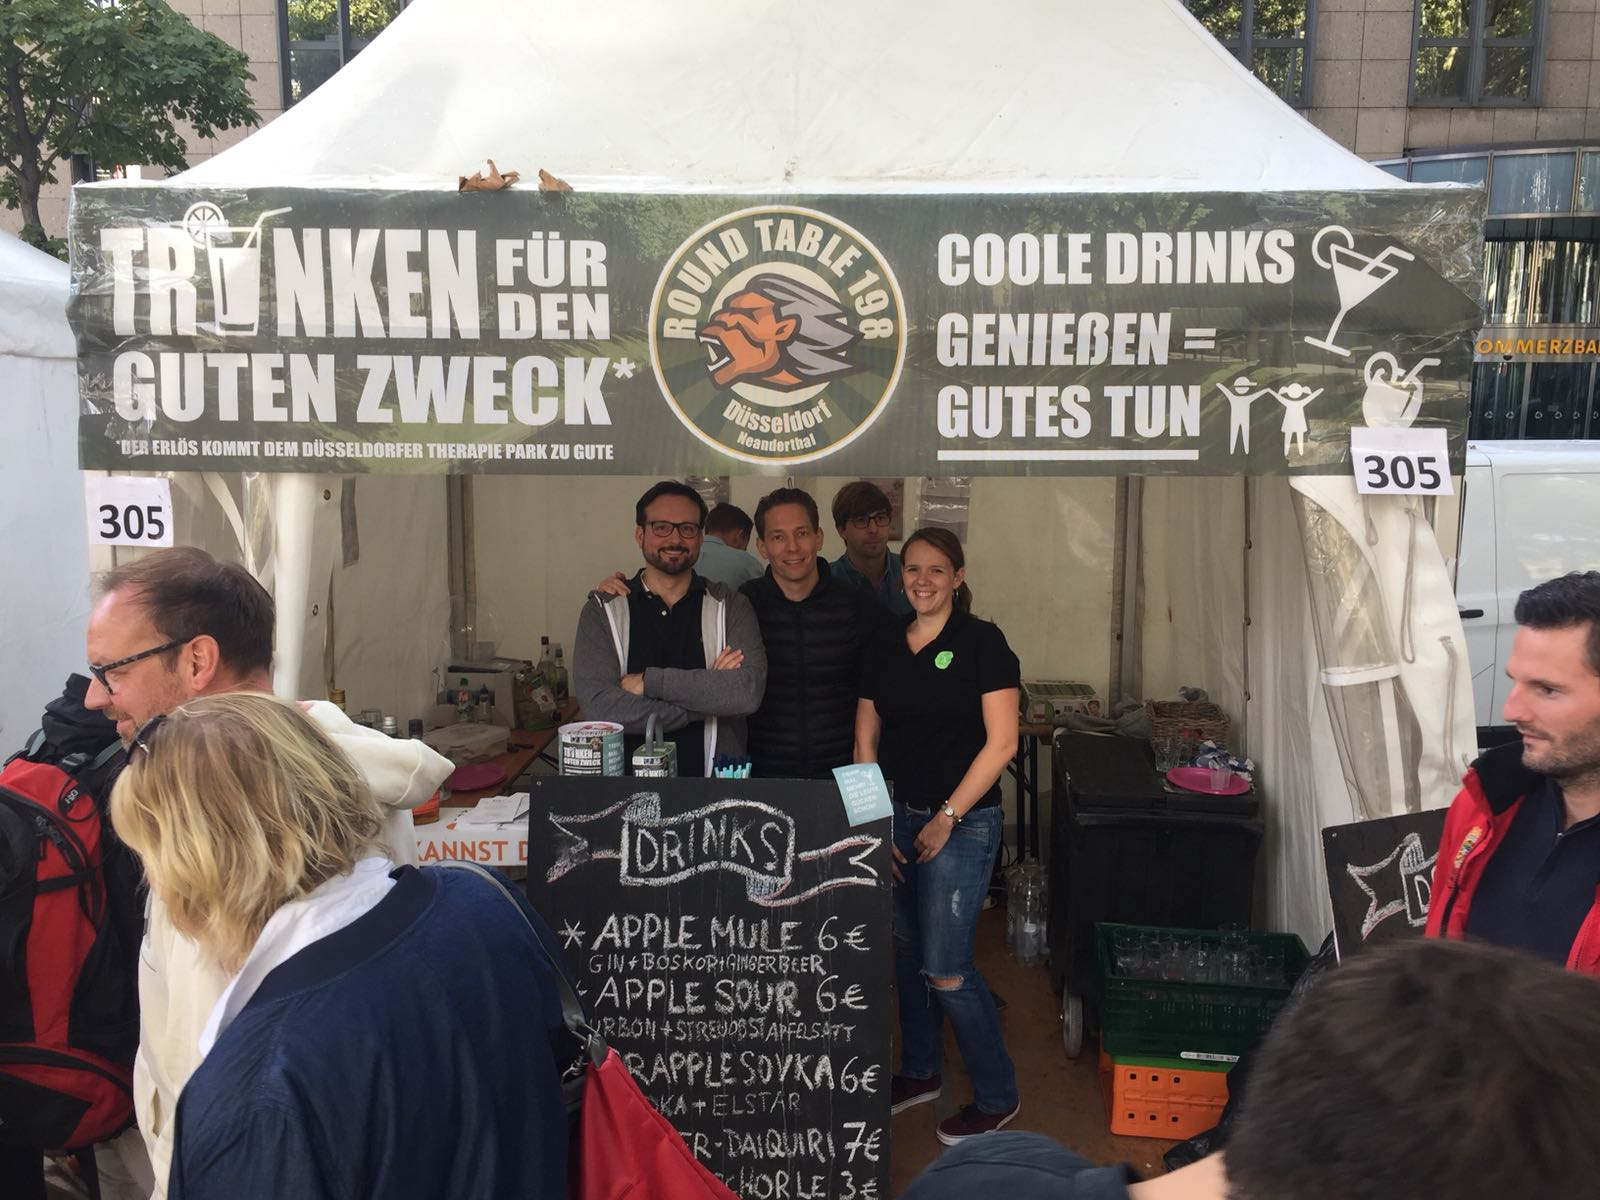 GOURMETFESTIVAL 2018 IN DÜSSELDORF - SIDE BY SIDE